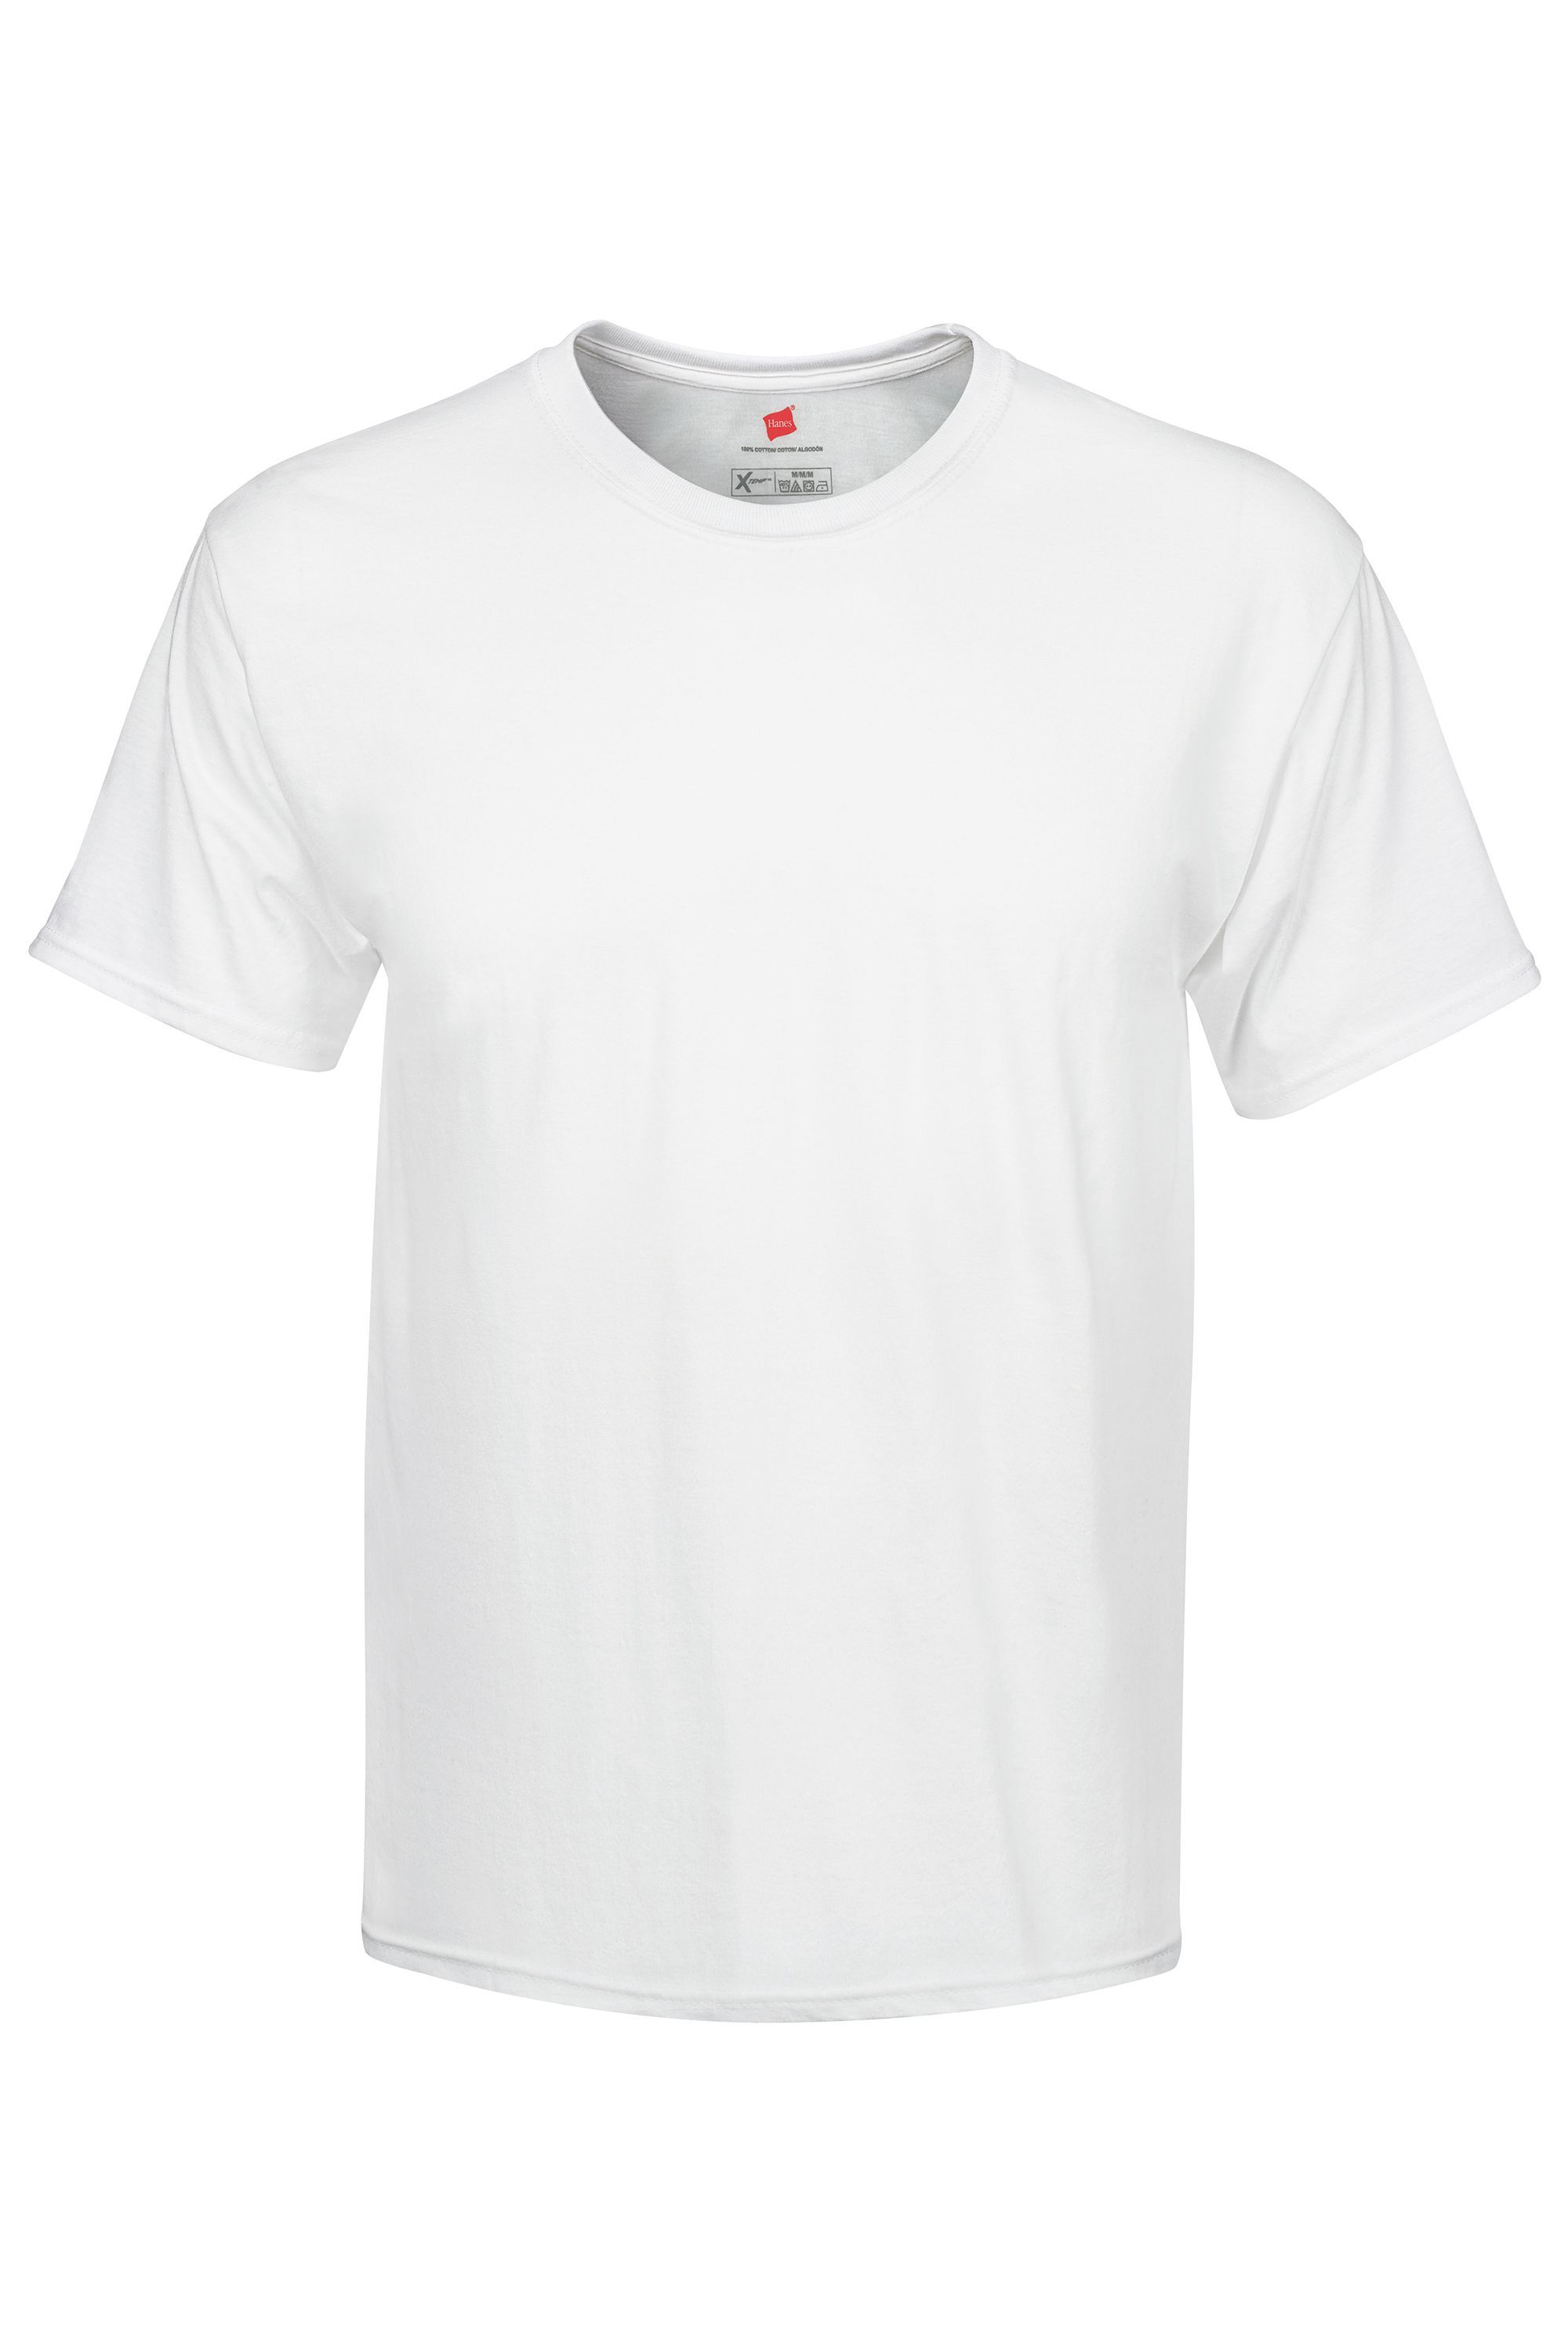 d61838007f1 11 Best White T Shirts - Perfect White Tee Shirts To Add to Your Summer  Wardrobe